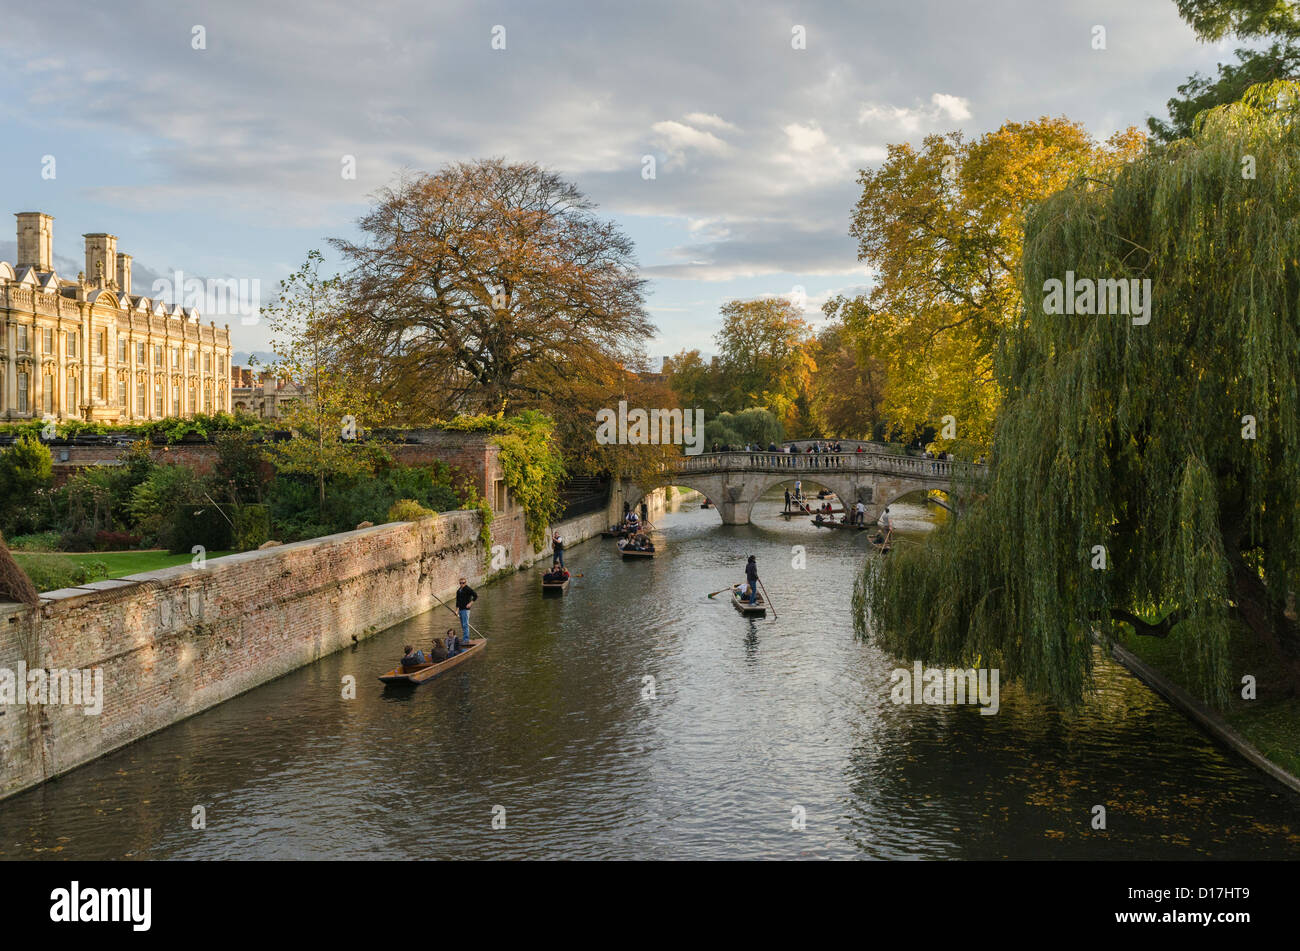 Cambridge - punting on the river Cam near Clare College. - Stock Image